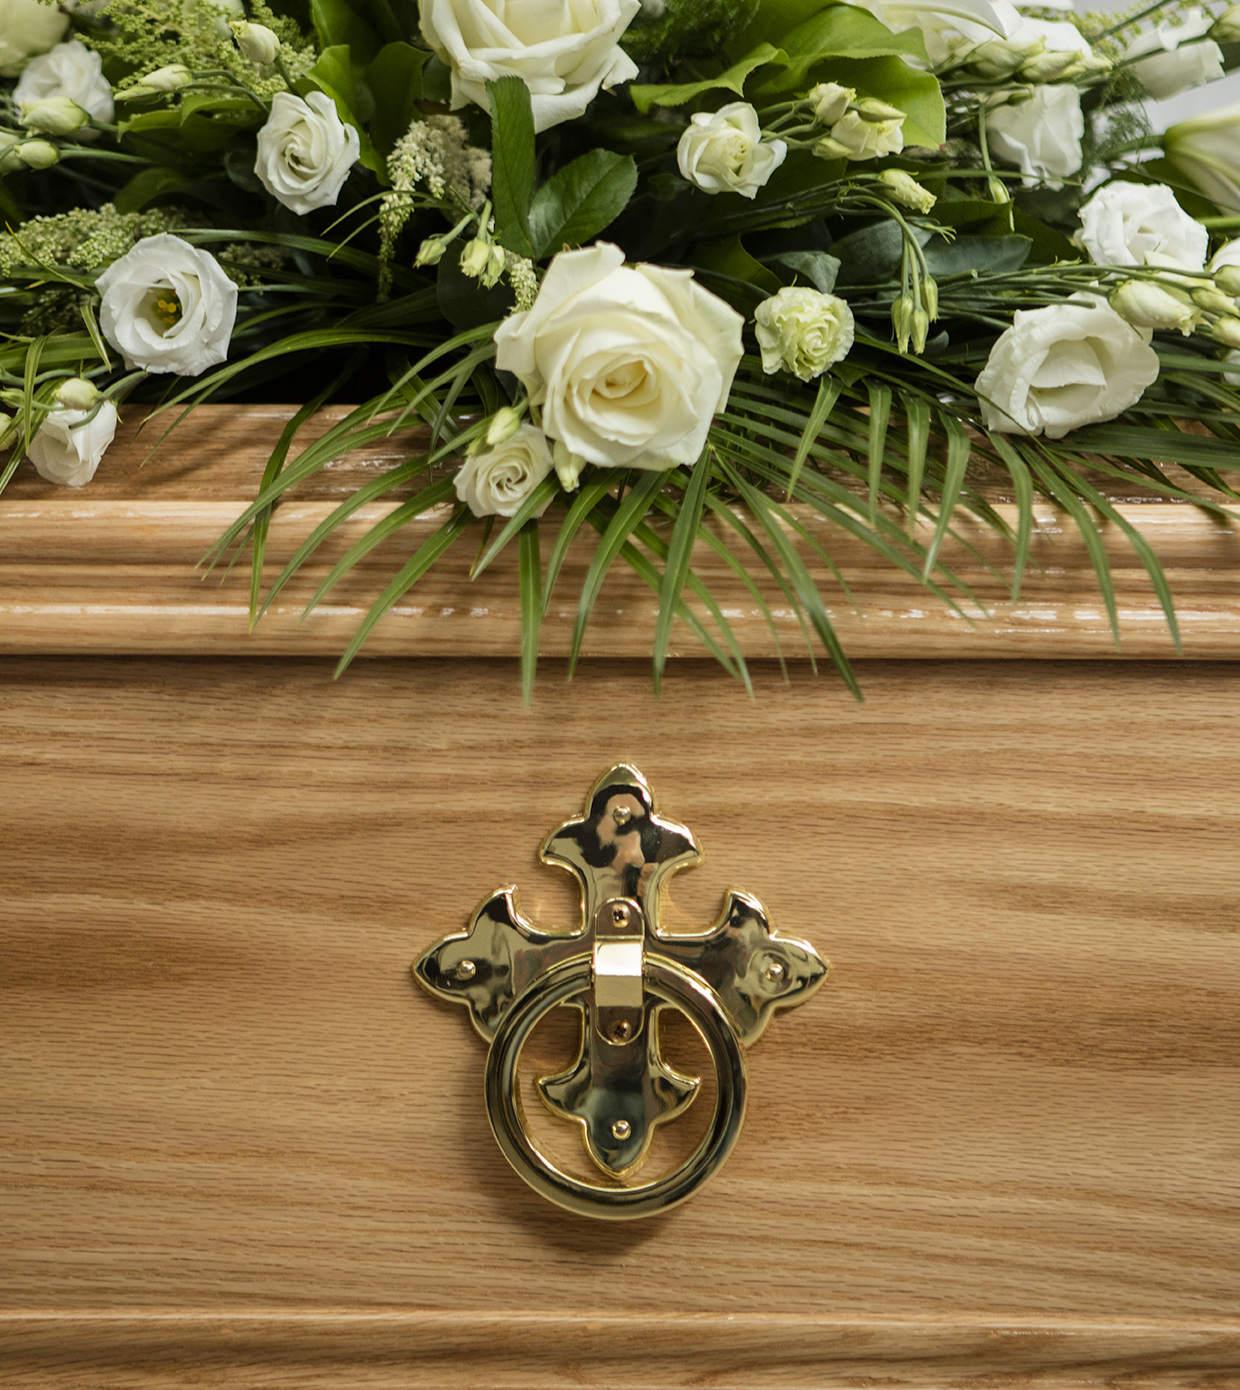 Funeral Grants - The death of a loved one can catch us unprepared. Fortunately, there are options available to those facing financial challenges.If you do not have the means to pay for the funeral, you may be eligible to receive an Exceptional Needs Payment from the Department of Social Protection.If you are widowed with dependent children you may also be eligible for the Widowed Parent Grant.While the Department of Social Protection may provide financial support, there are also many services offering emotional, psychological and community support to those suffering bereavement. Please visit our Support Linkspage for more information.Some Credit Union members may also be eligible to receive a death benefit to assist in covering the cost of a funeral. Check with your local branch to determine if you or your loved one is covered.